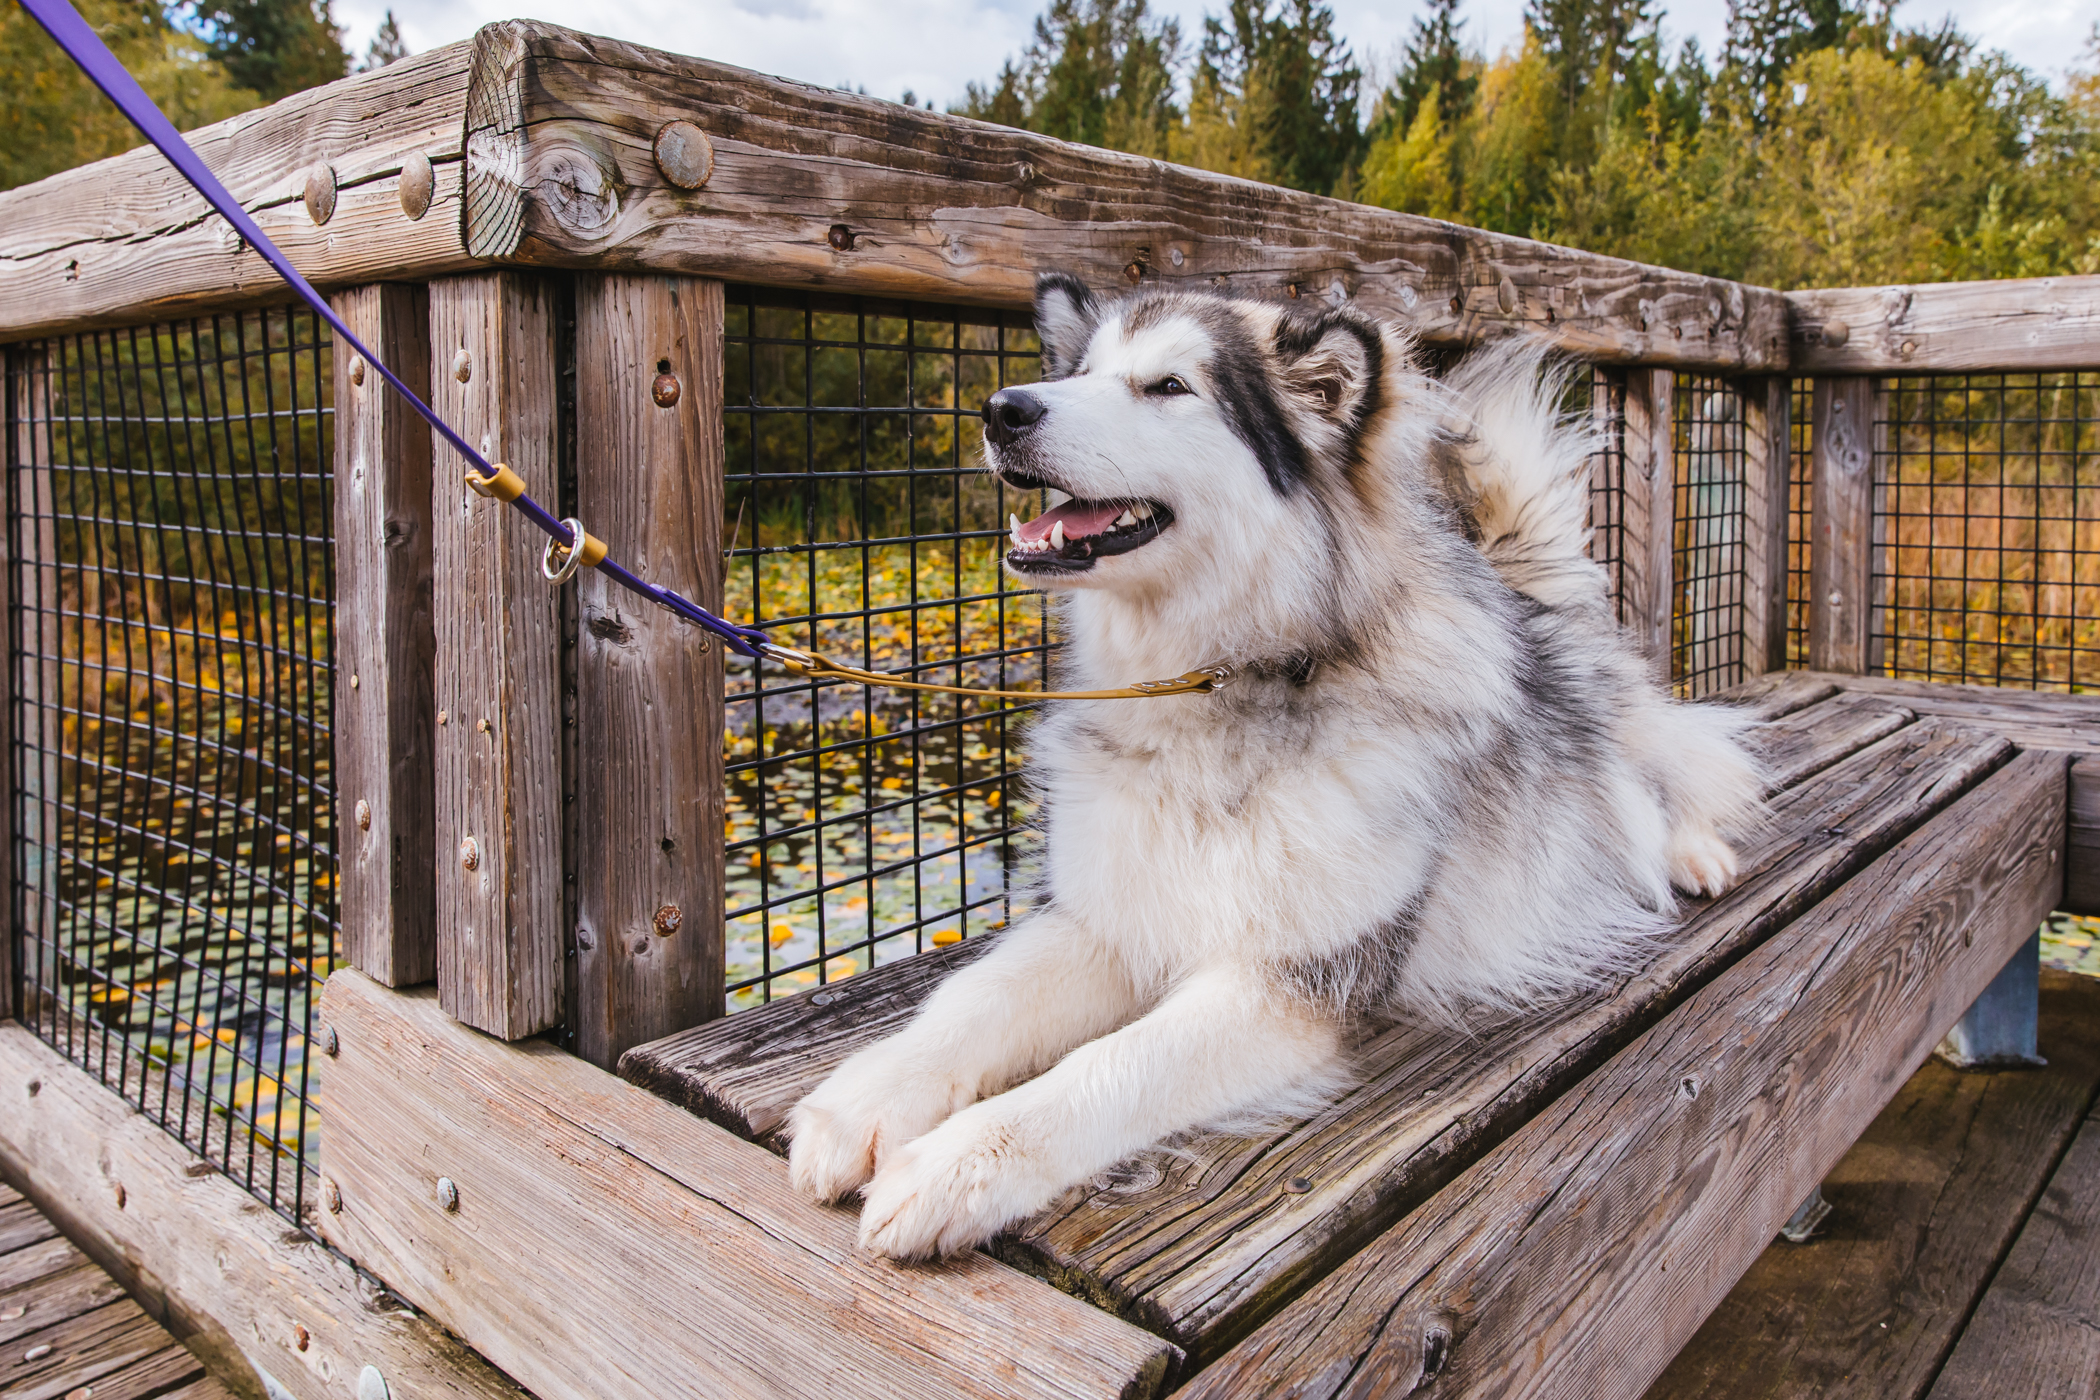 "She's got plenty of nicknames, but this 11-month-old{&nbsp;}Alaskan Malamute's full name is{&nbsp;}Gryphon's McKinley Moon. She's a woolly Malamute, meaning she has more fluffy hair than usual.{&nbsp;}McKinley's owners said she helped heal their hearts after losing{&nbsp;}Kona, their six-year-old Malamute, to cancer. She's a ""special soul"" who frequents{&nbsp;}local breweries in Snoqualmie and North Bend.{&nbsp;}McKinley loves toys, peanut butter treats, cuddles and long walks (while carrying a stick) but hates rabbits in her yard! Keep up with her on IG{&nbsp;}<a  href=""https://www.instagram.com/benson_mckinley/"" target=""_blank"" title=""https://www.instagram.com/benson_mckinley/"">@benson_mckinley</a>.{&nbsp;}The{&nbsp;}<a  href=""http://seattlerefined.com/ruffined"" target=""_blank"" title=""http://seattlerefined.com/ruffined"">RUFFined Spotlight</a>{&nbsp;}is a weekly profile of local pets living and loving life in the PNW. If you or someone you know has a pet you'd like featured, email us at hello@seattlerefined.com, and your furbaby could be the next spotlighted! (Image: Sunita Martini / Seattle Refined)"